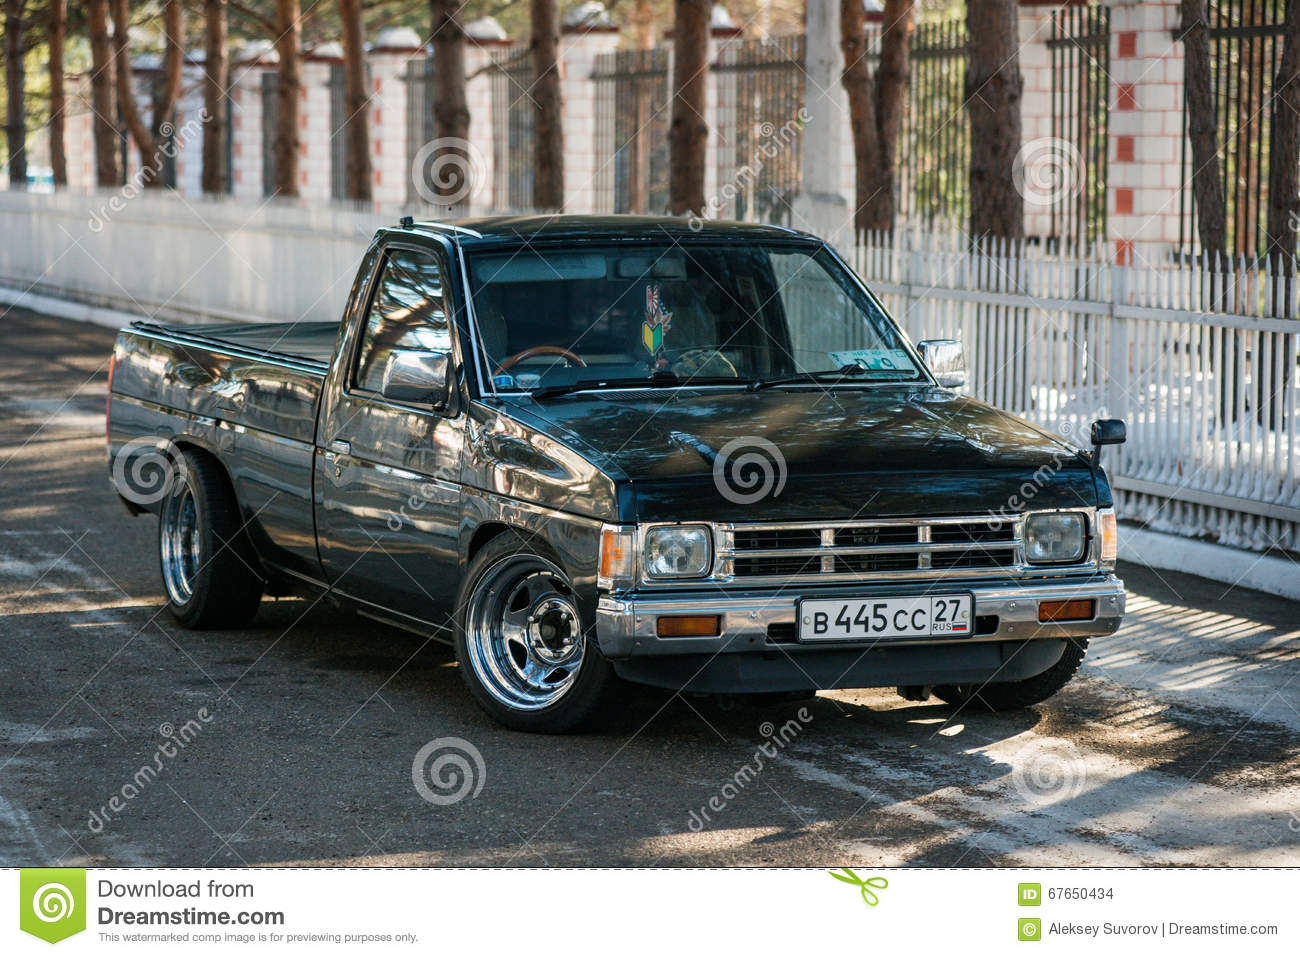 motor car nissan datsun pickup truck at the city street editorial stock image image of carry. Black Bedroom Furniture Sets. Home Design Ideas